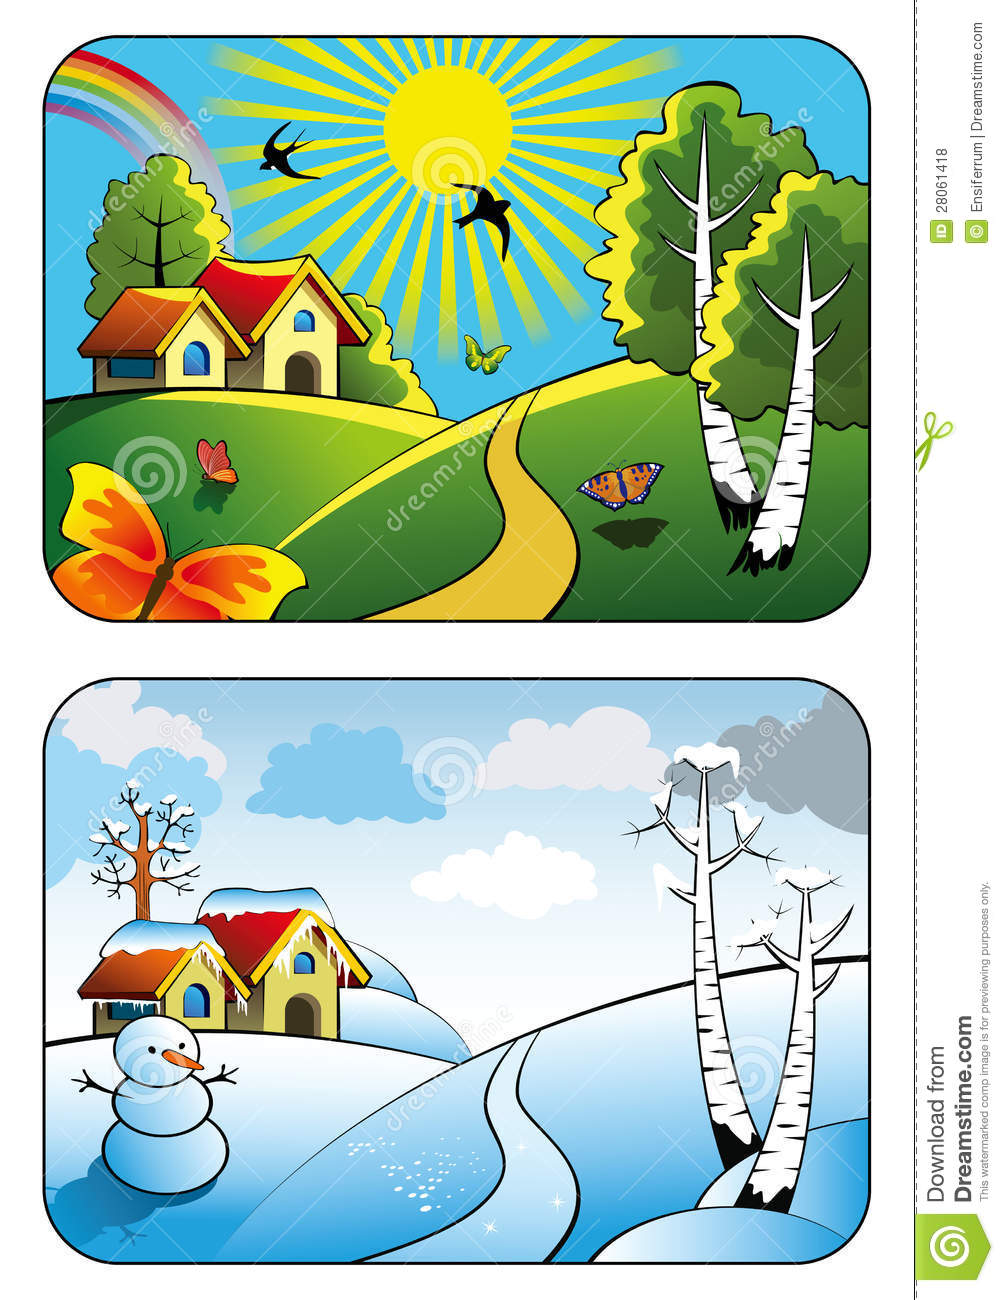 Summer vs winter clipart png freeuse download Summer vs winter clipart - ClipartFest png freeuse download